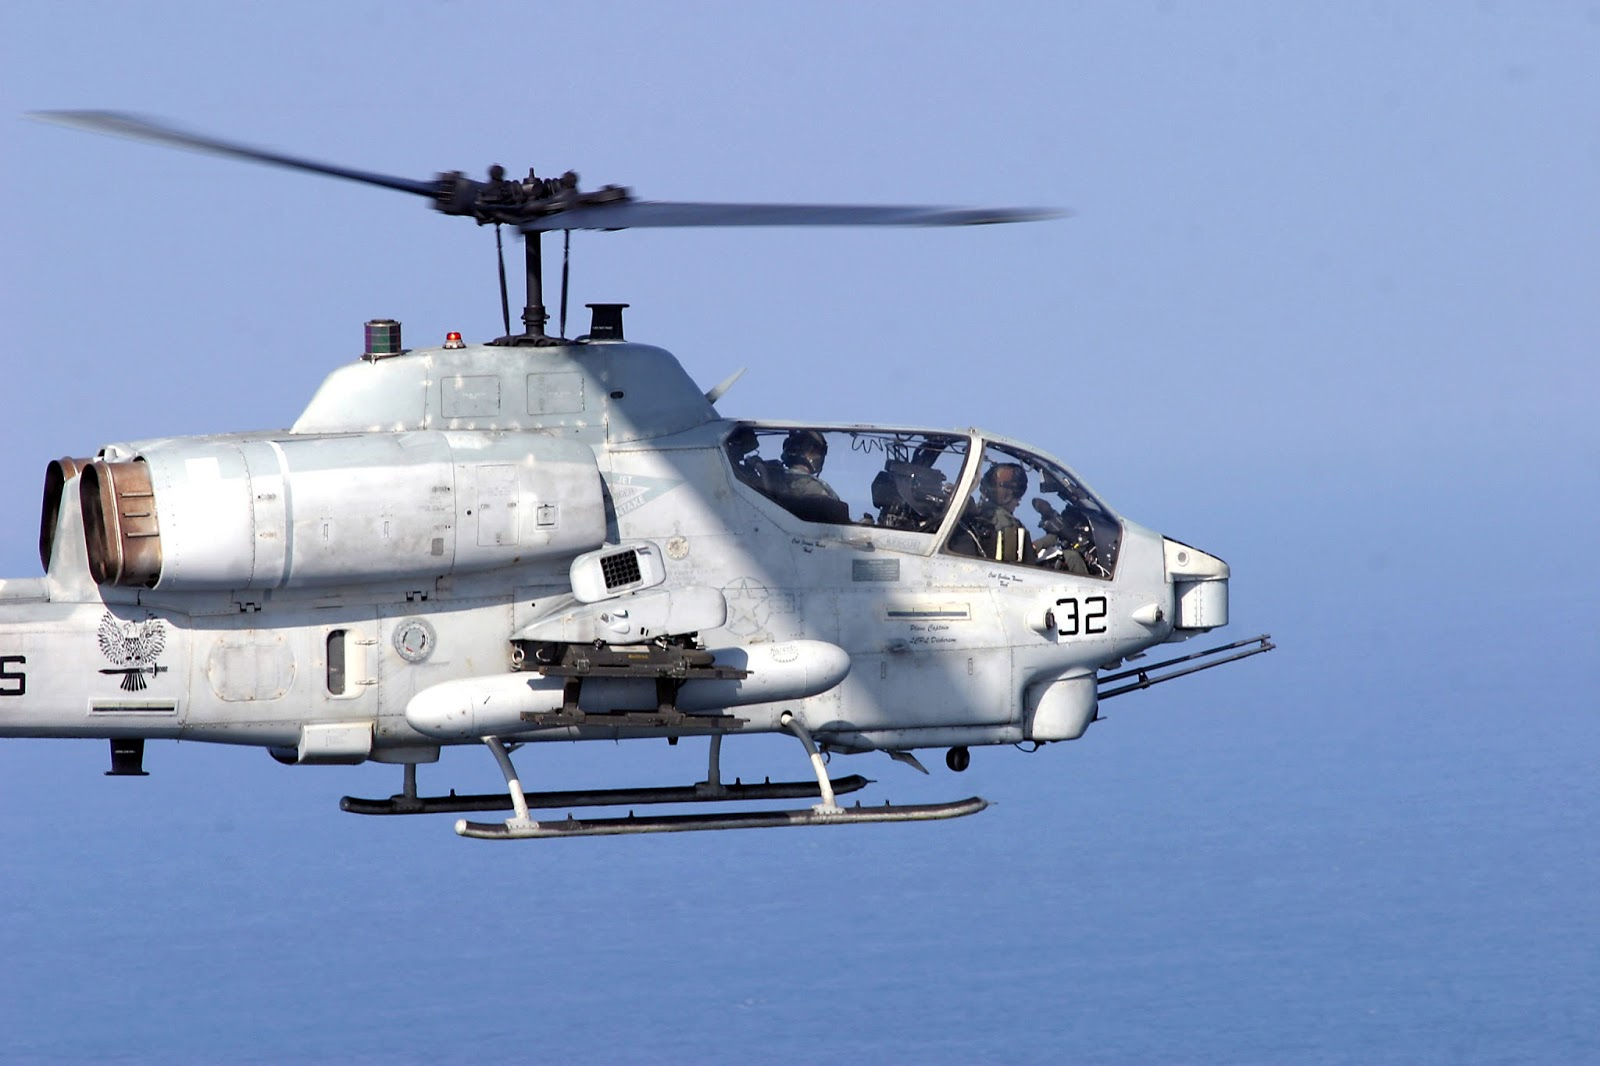 Top 10 Attack Helicopters In The World | TOP 10 Ah